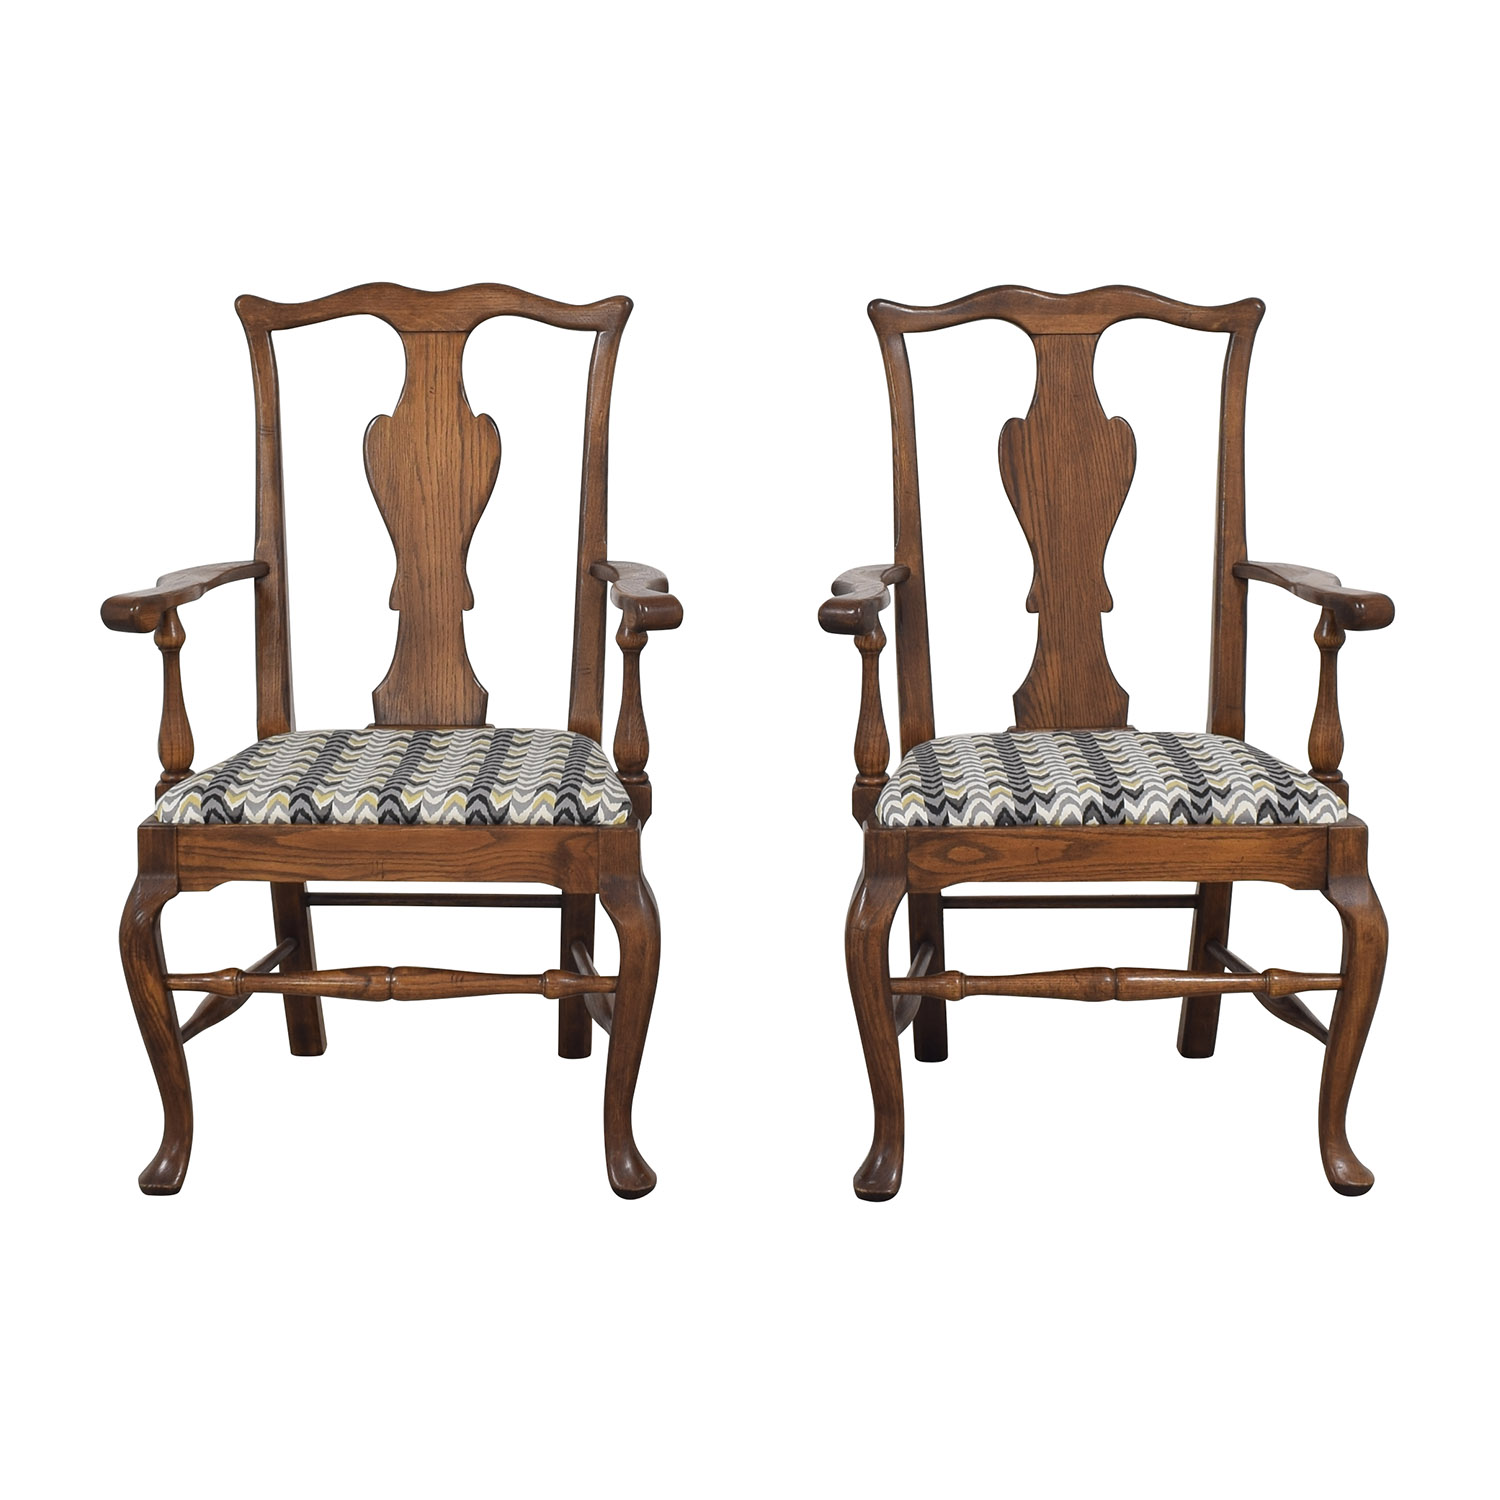 Ethan Allen Ethan Allen Queen Anne Dining Arm Chairs Dining Chairs